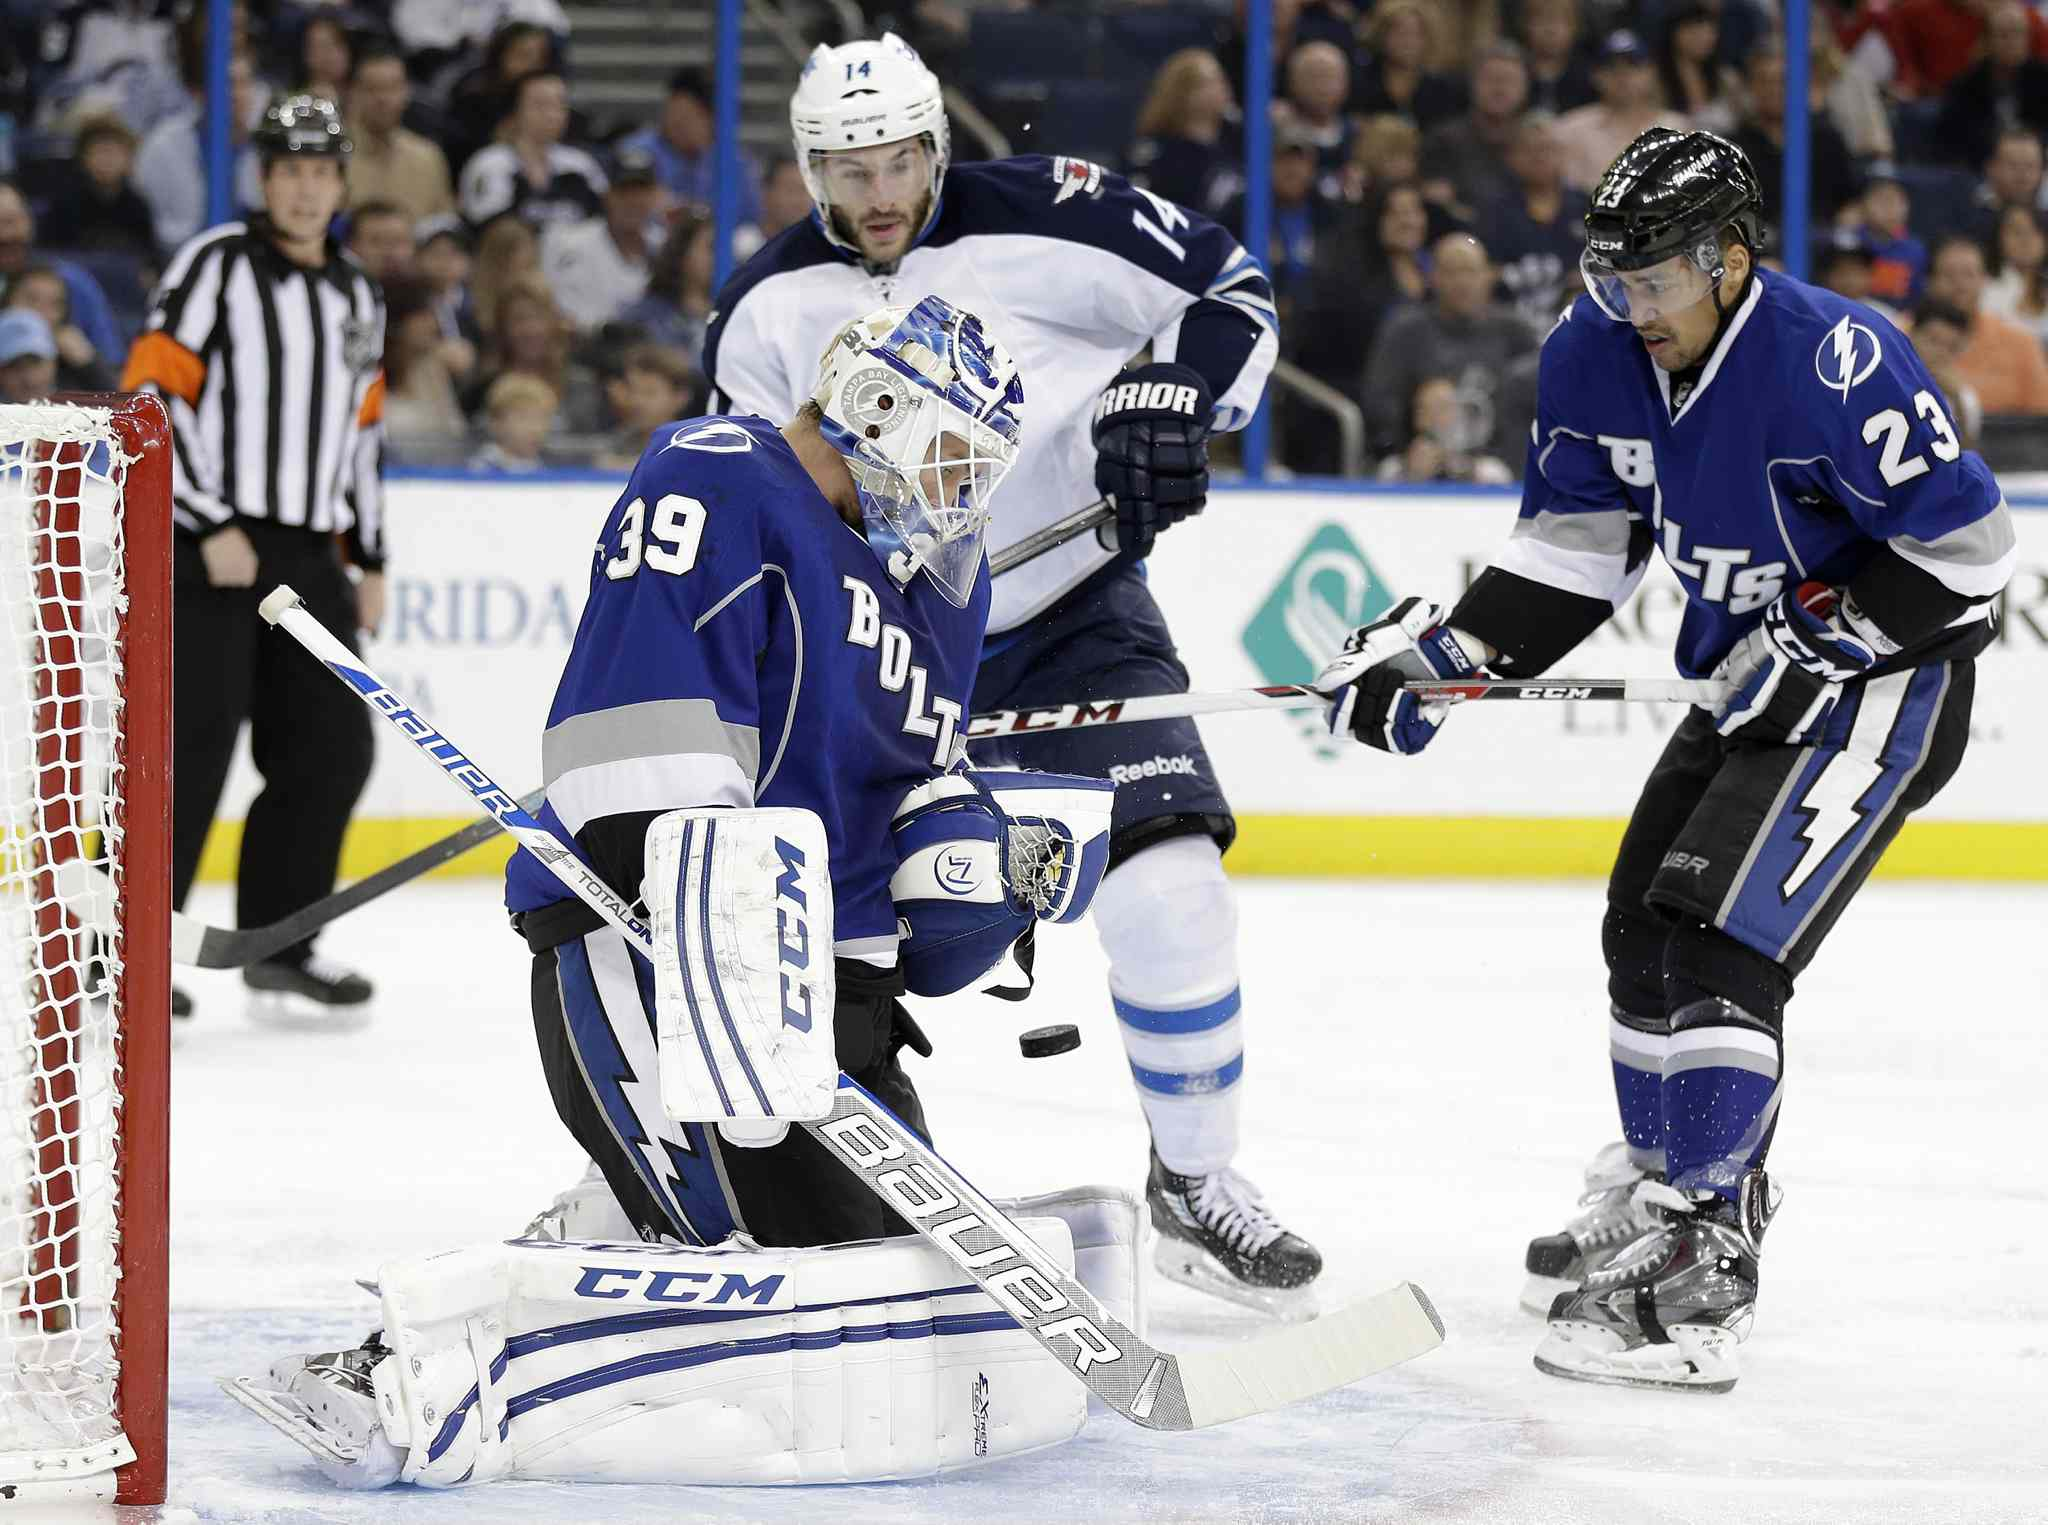 Tampa Bay Lightning goalie Anders Lindback (front)makes a save on a shot by Winnipeg Jets winger Anthony Peluso (centre) as Lightning's J.T. Brown defends during the third period.